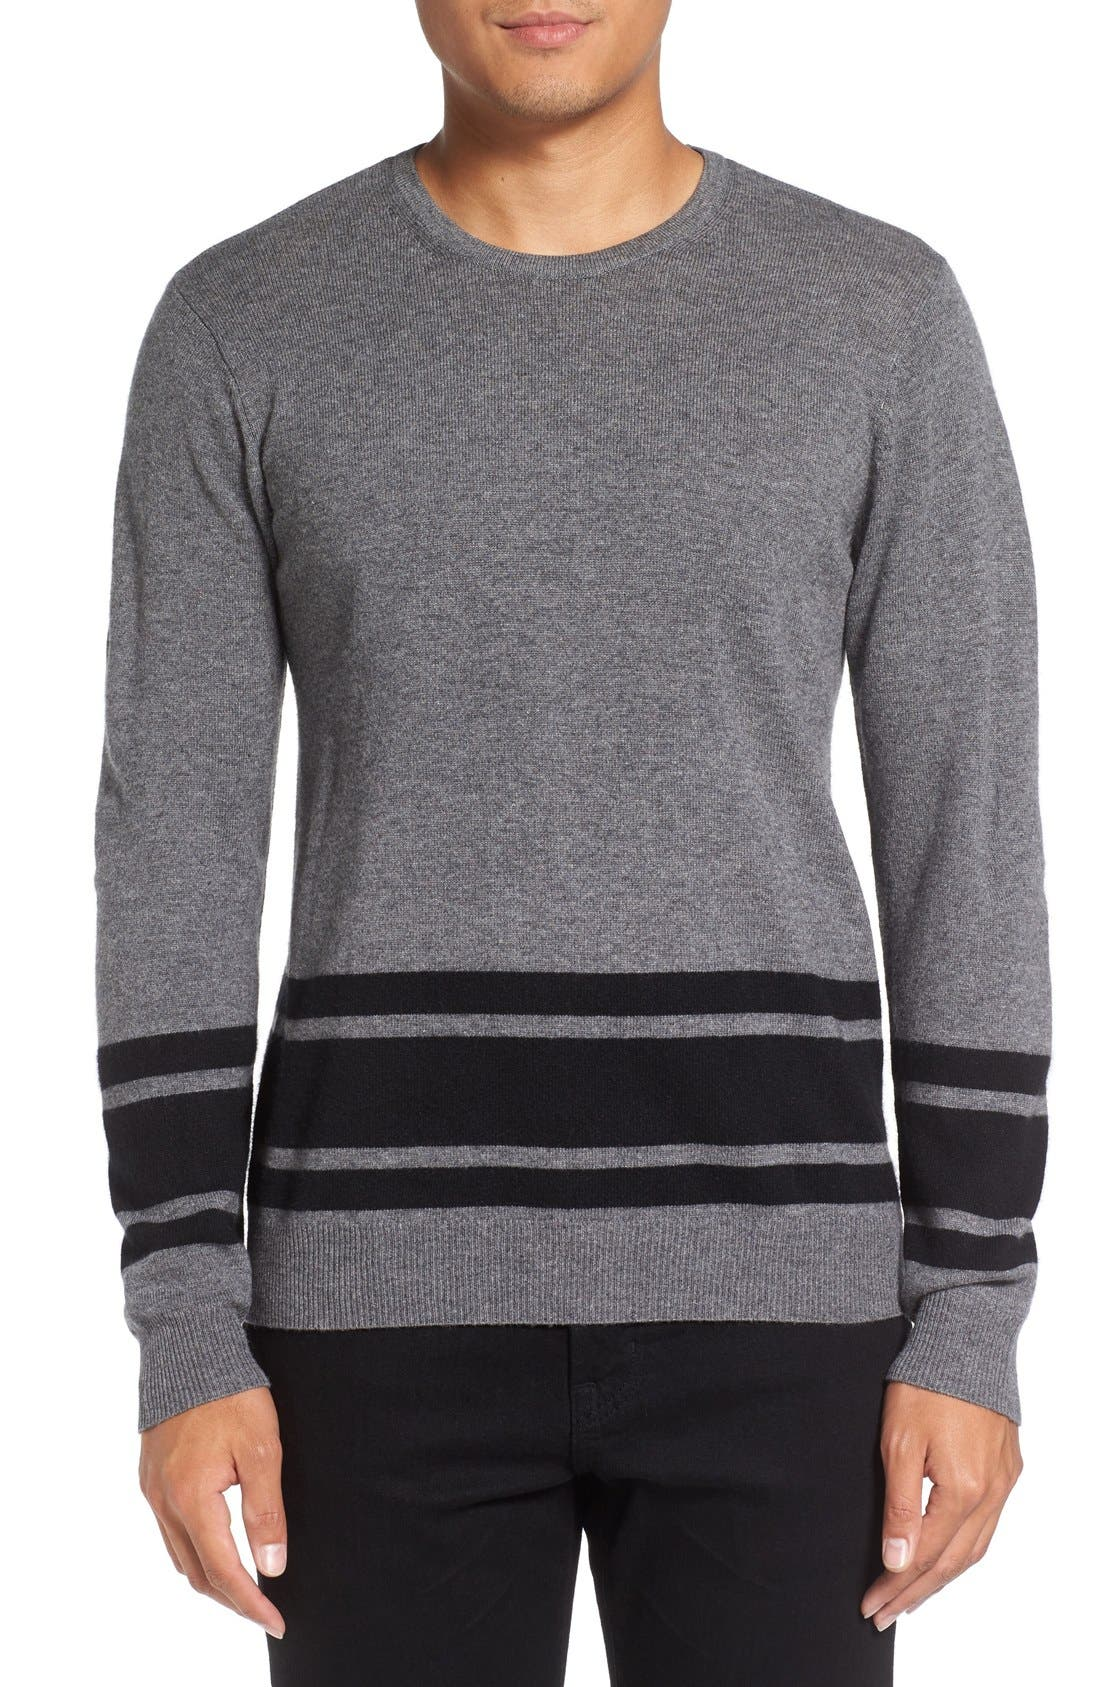 Stripe Wool Blend Sweater,                         Main,                         color, Derby Grey/ Black